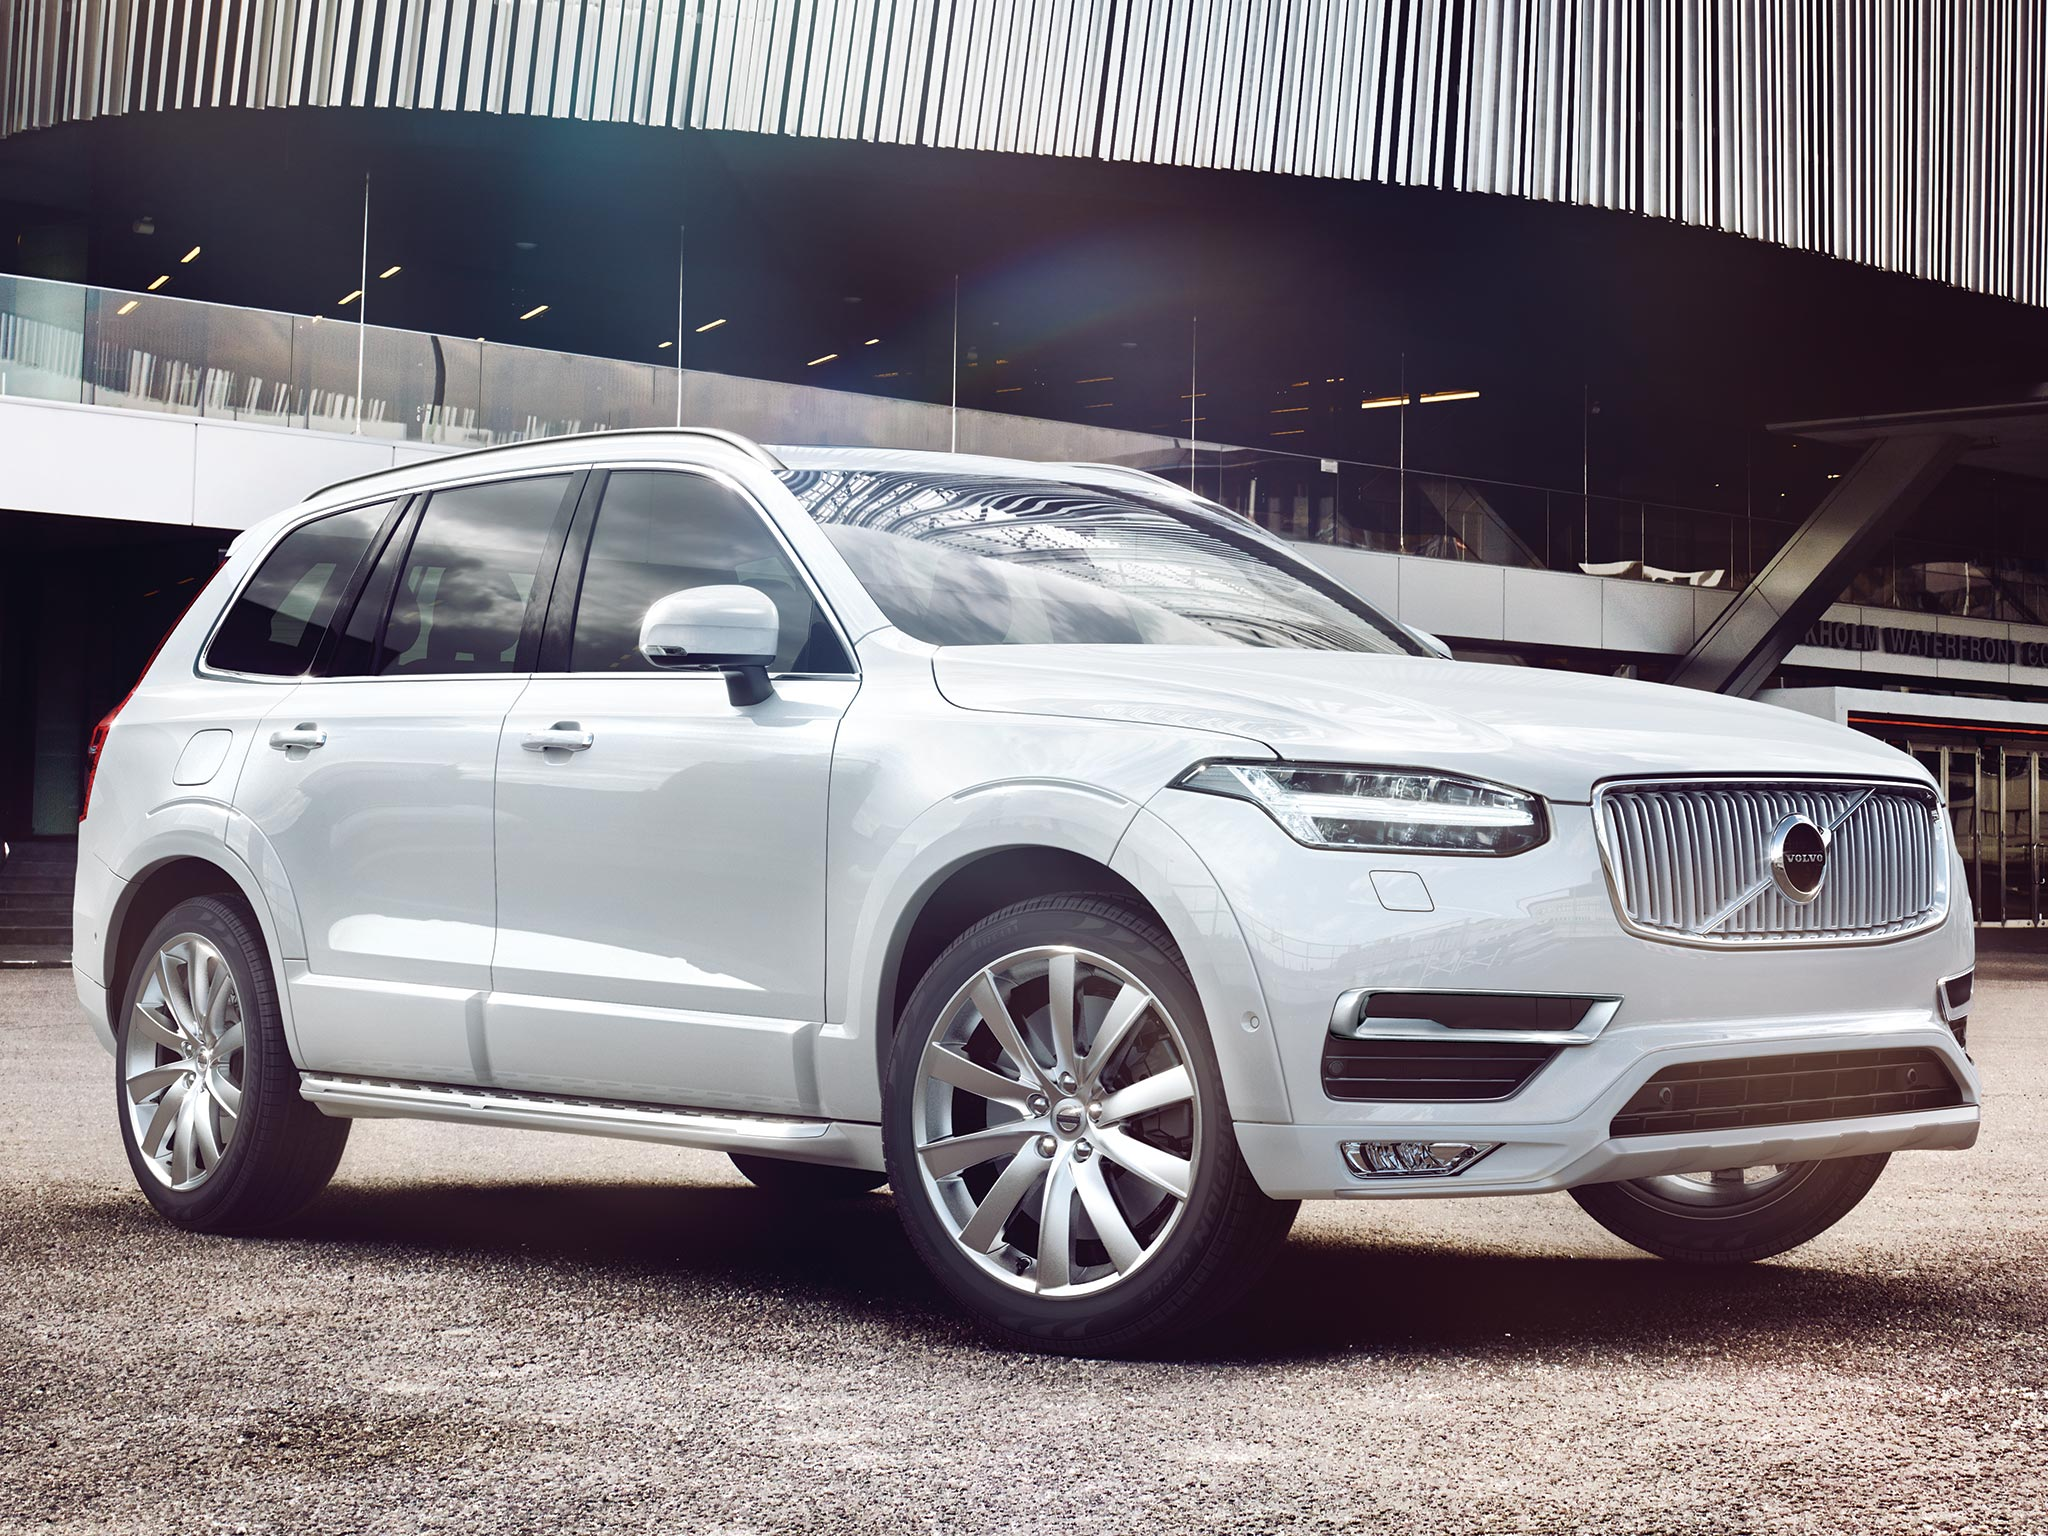 White XC90 7-seater SUV